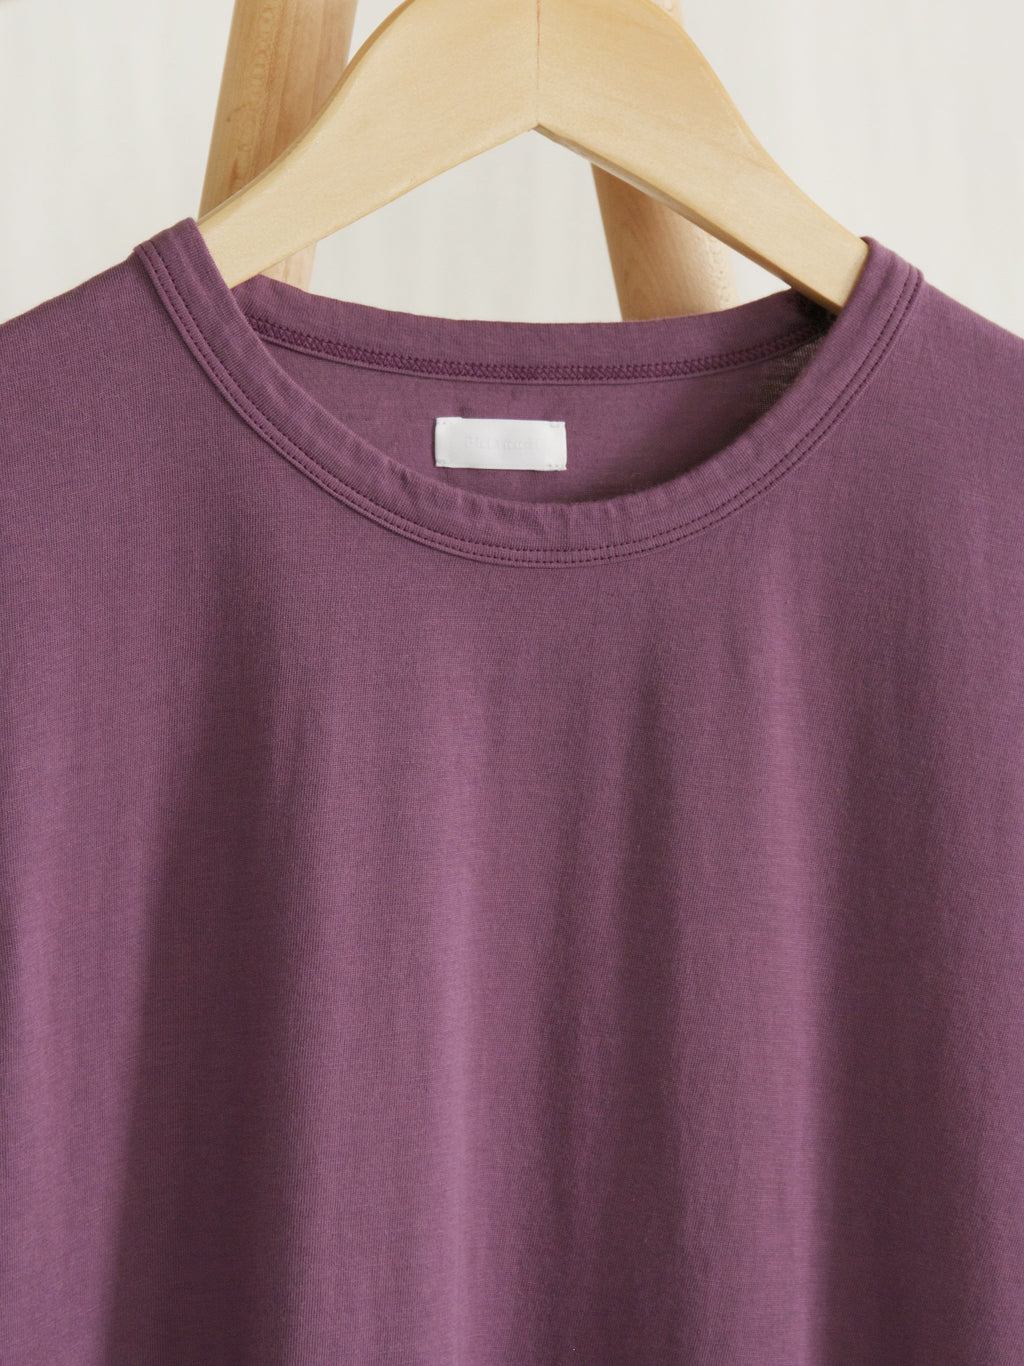 Namu Shop - Phlannel Light Suvin Cotton T-Shirt - Lavender